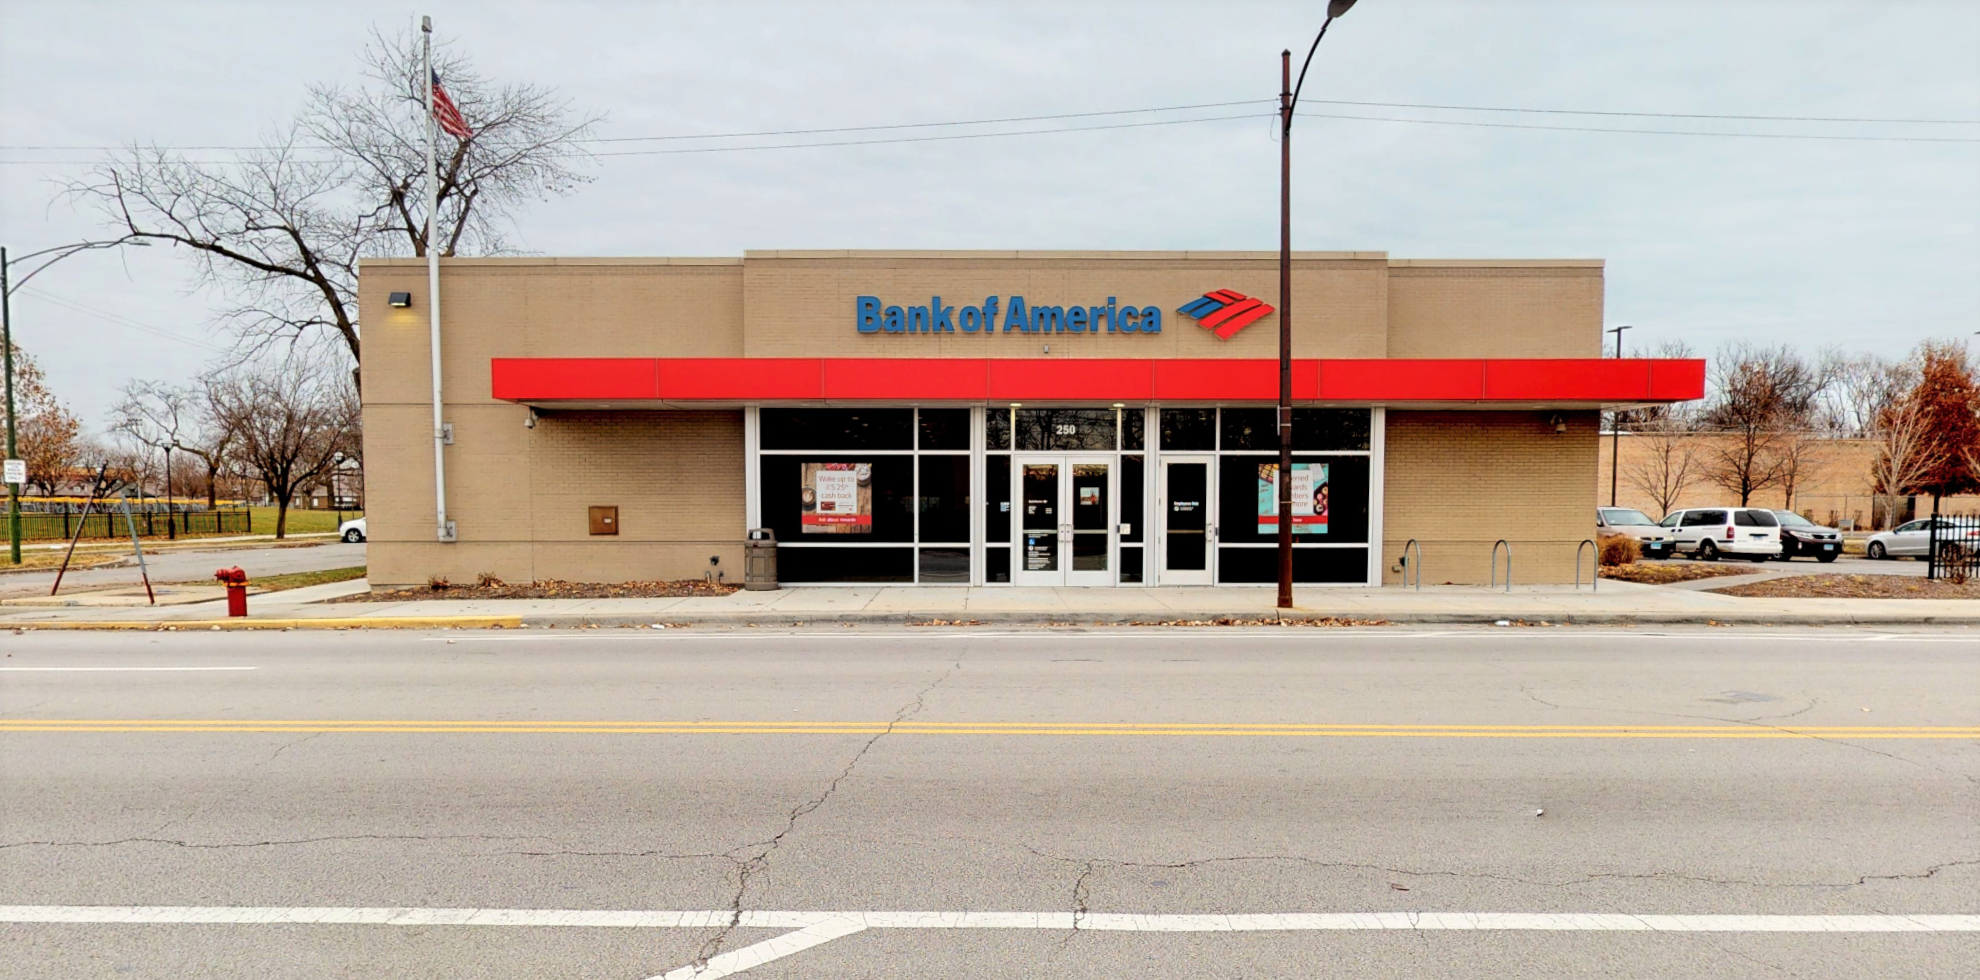 Bank of America financial center with drive-thru ATM   250 W 83rd St, Chicago, IL 60620